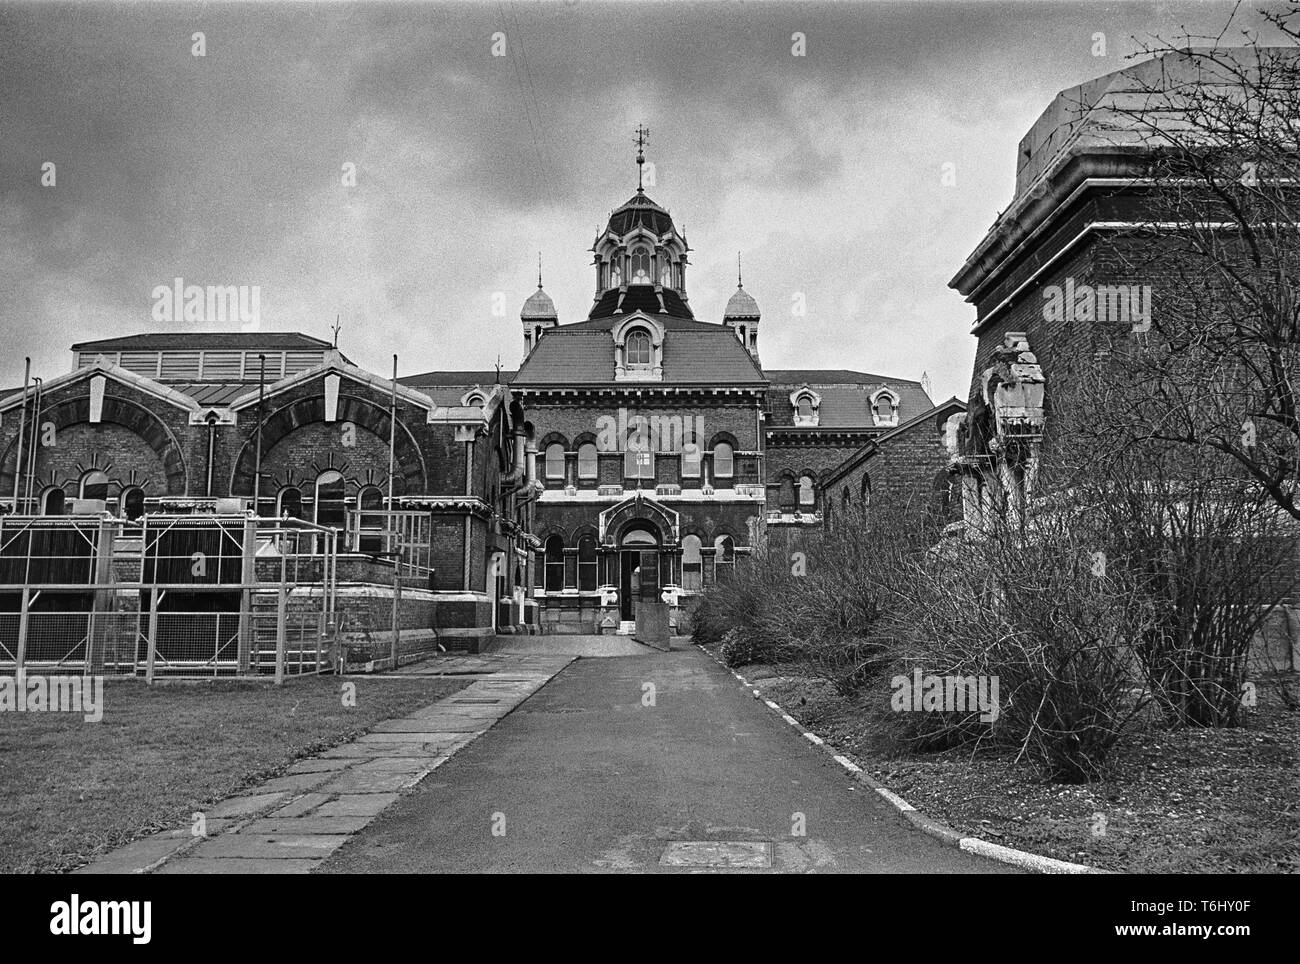 7/22  Tower Hamlets Abbey Mills Pumping Station 1979.nef - Stock Image